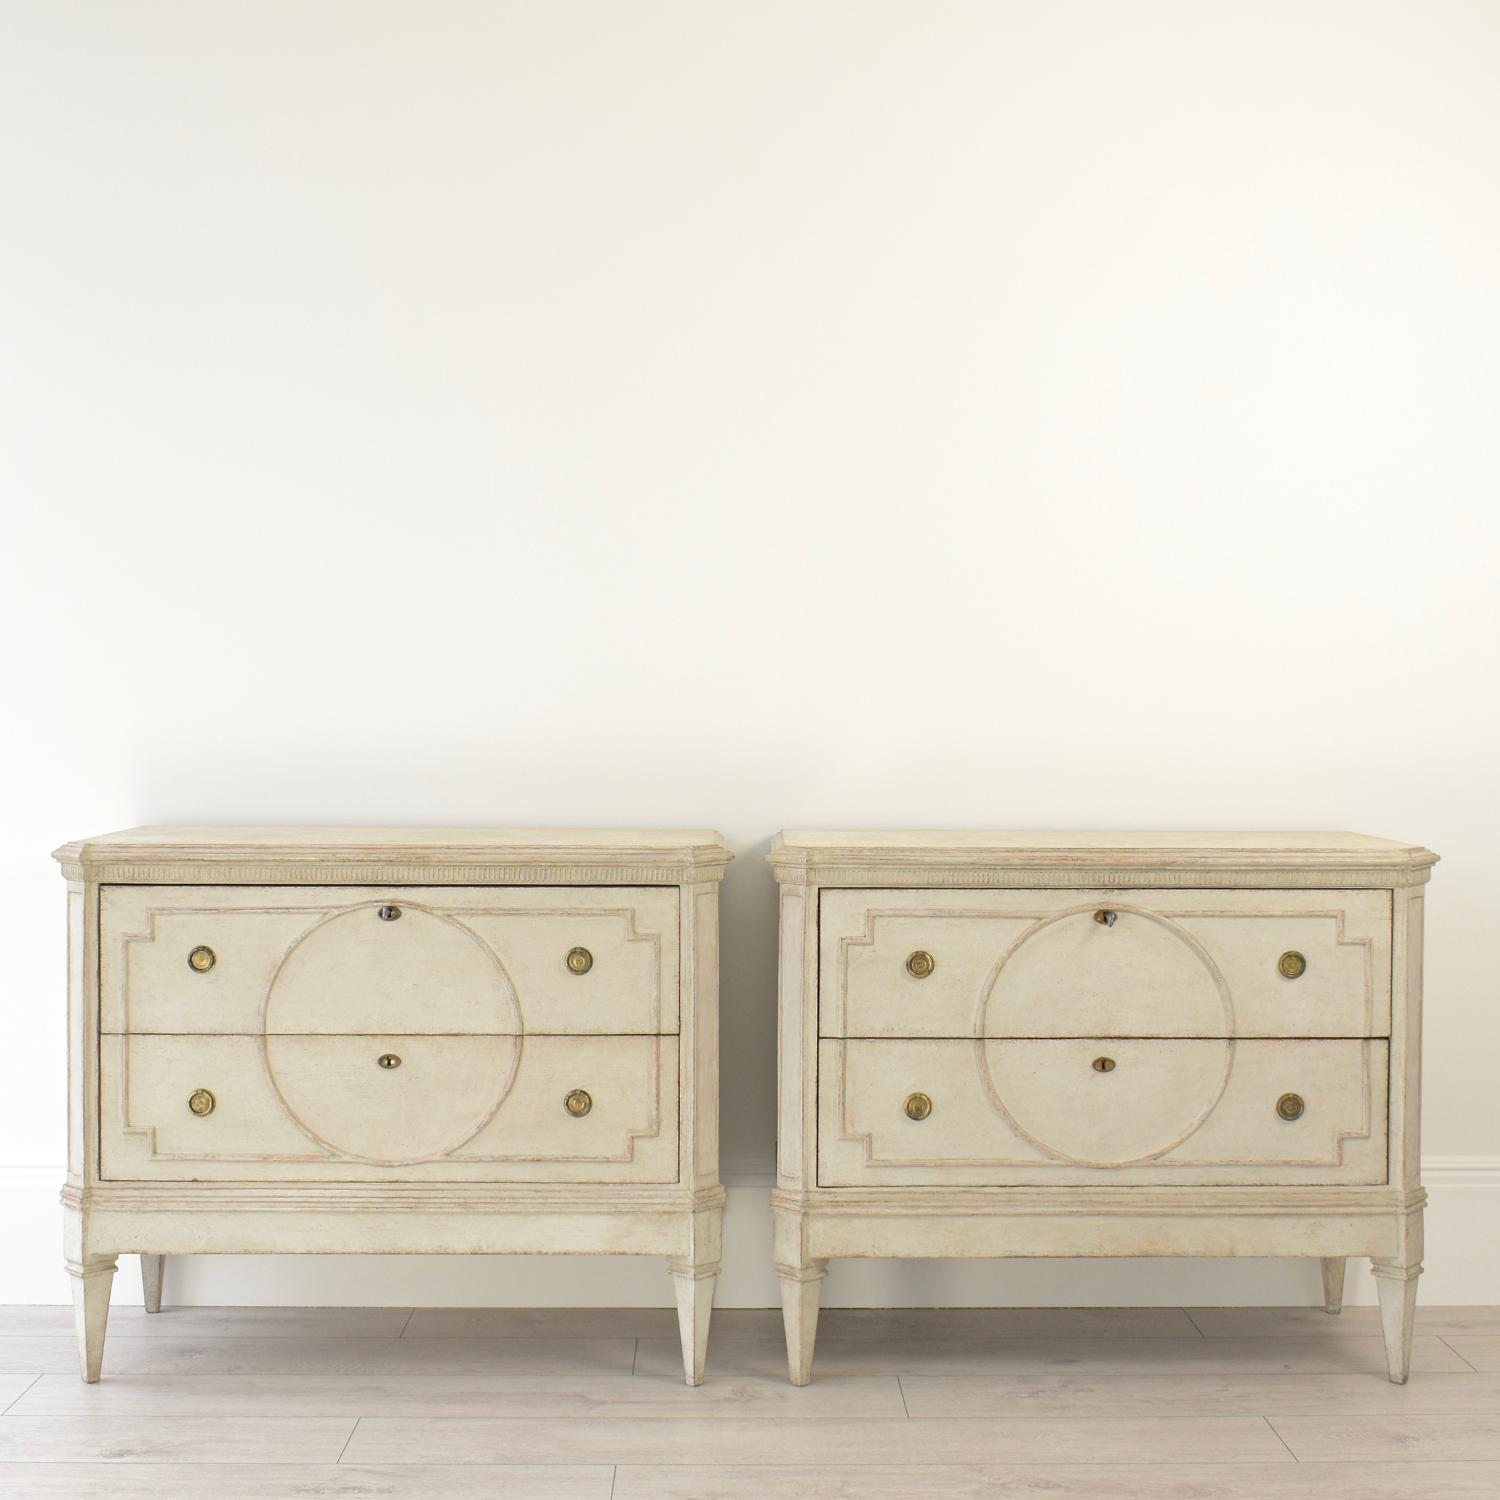 DECORATIVE PAIR OF SWEDISH GUSTAVIAN CHESTS